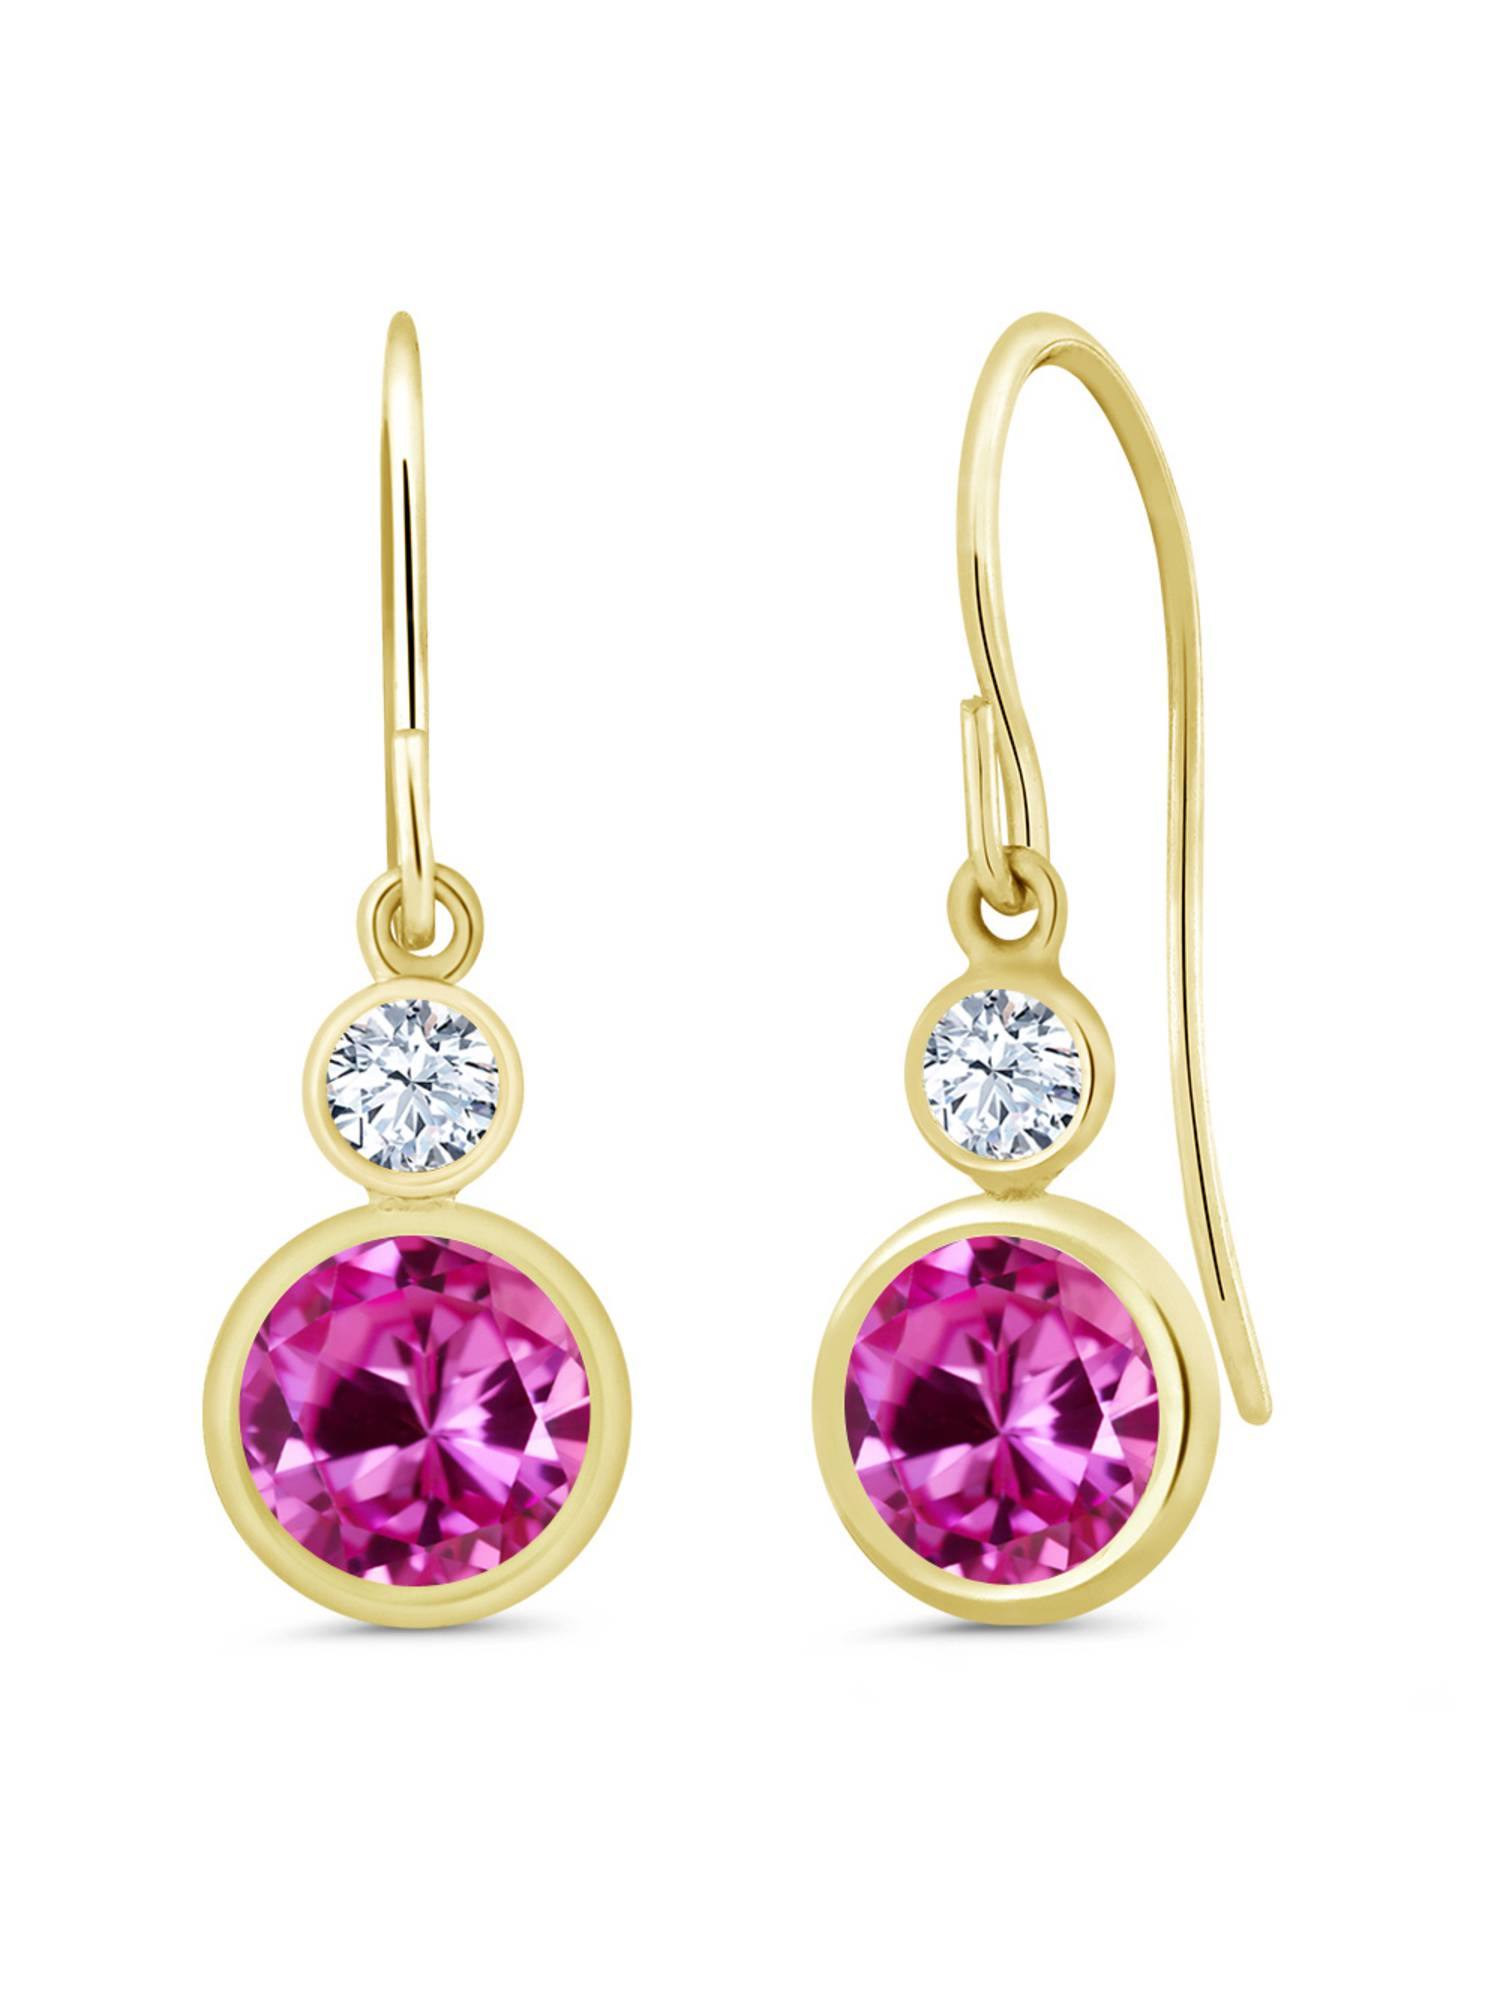 2.26 Ct Pink Created Sapphire White Created Sapphire 14K Yellow Gold Earrings by